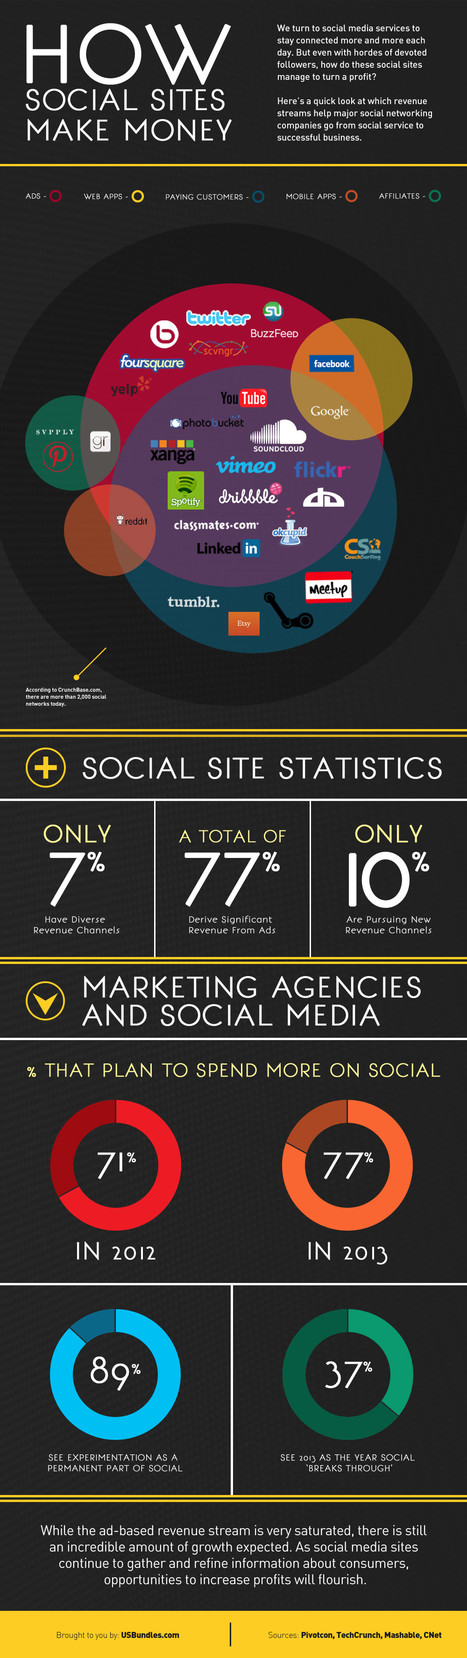 INFOGRAPHIC: How Social Sites Make Money | Cloud Central | Scoop.it